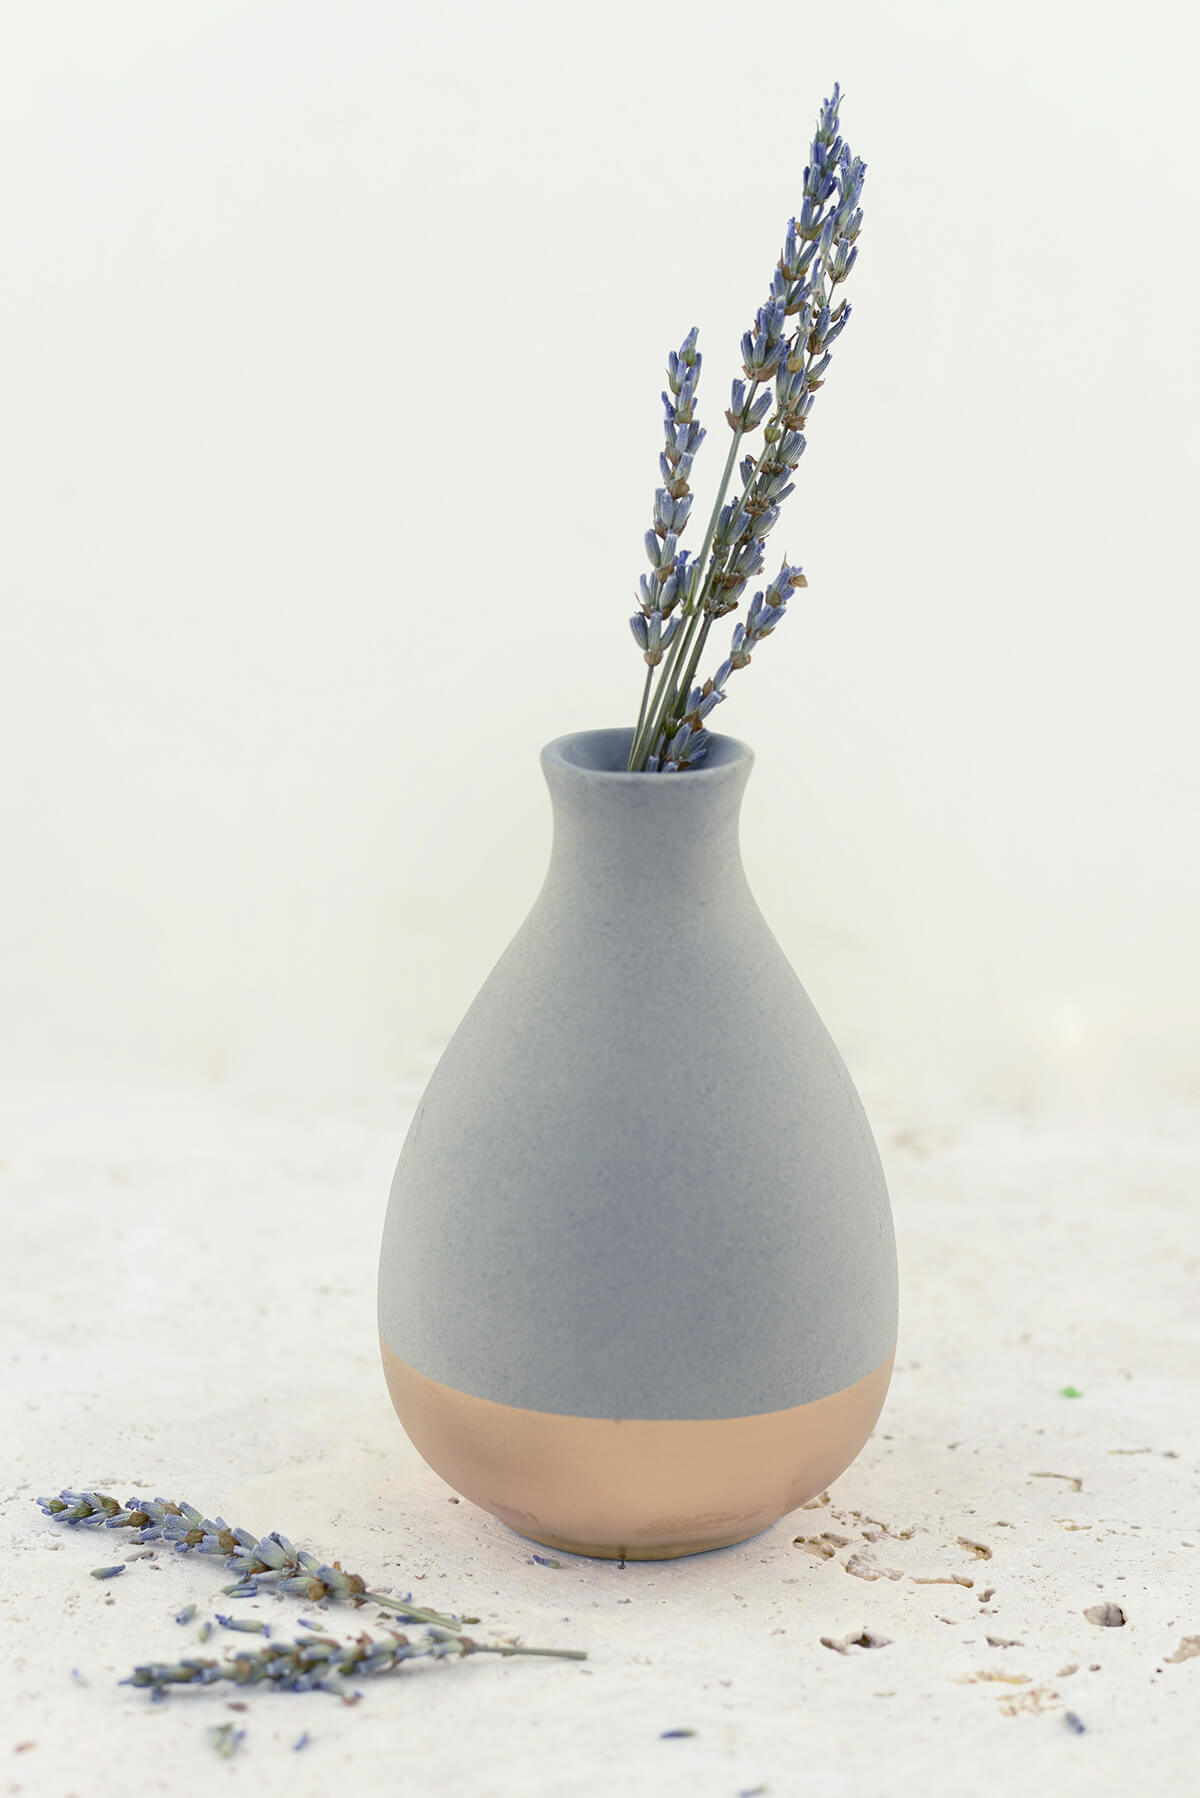 Gold Dipped Clay Teadrop Vase